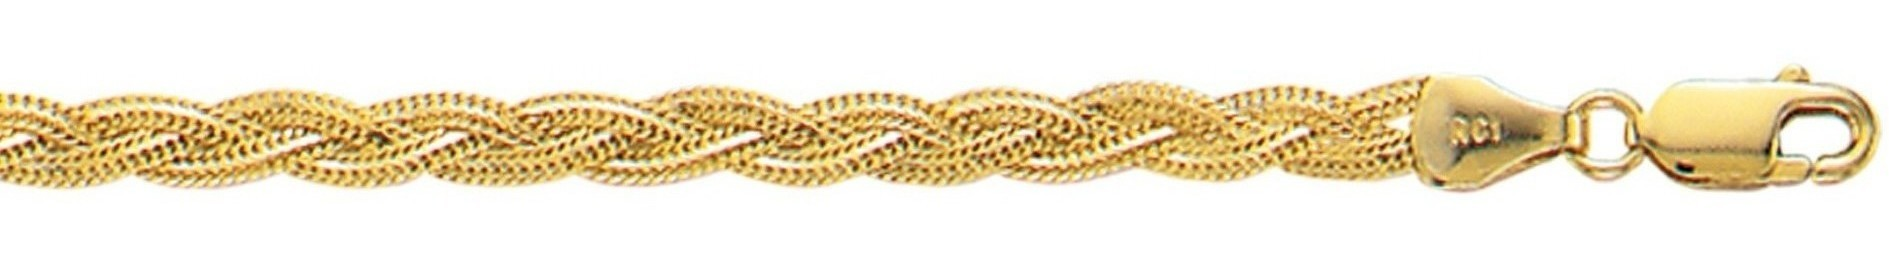 "18"" 14K Yellow Gold 3.5mm (1/7"") Polished Diamond Cut Braided Foxtail Chain w/ Lobster Clasp"